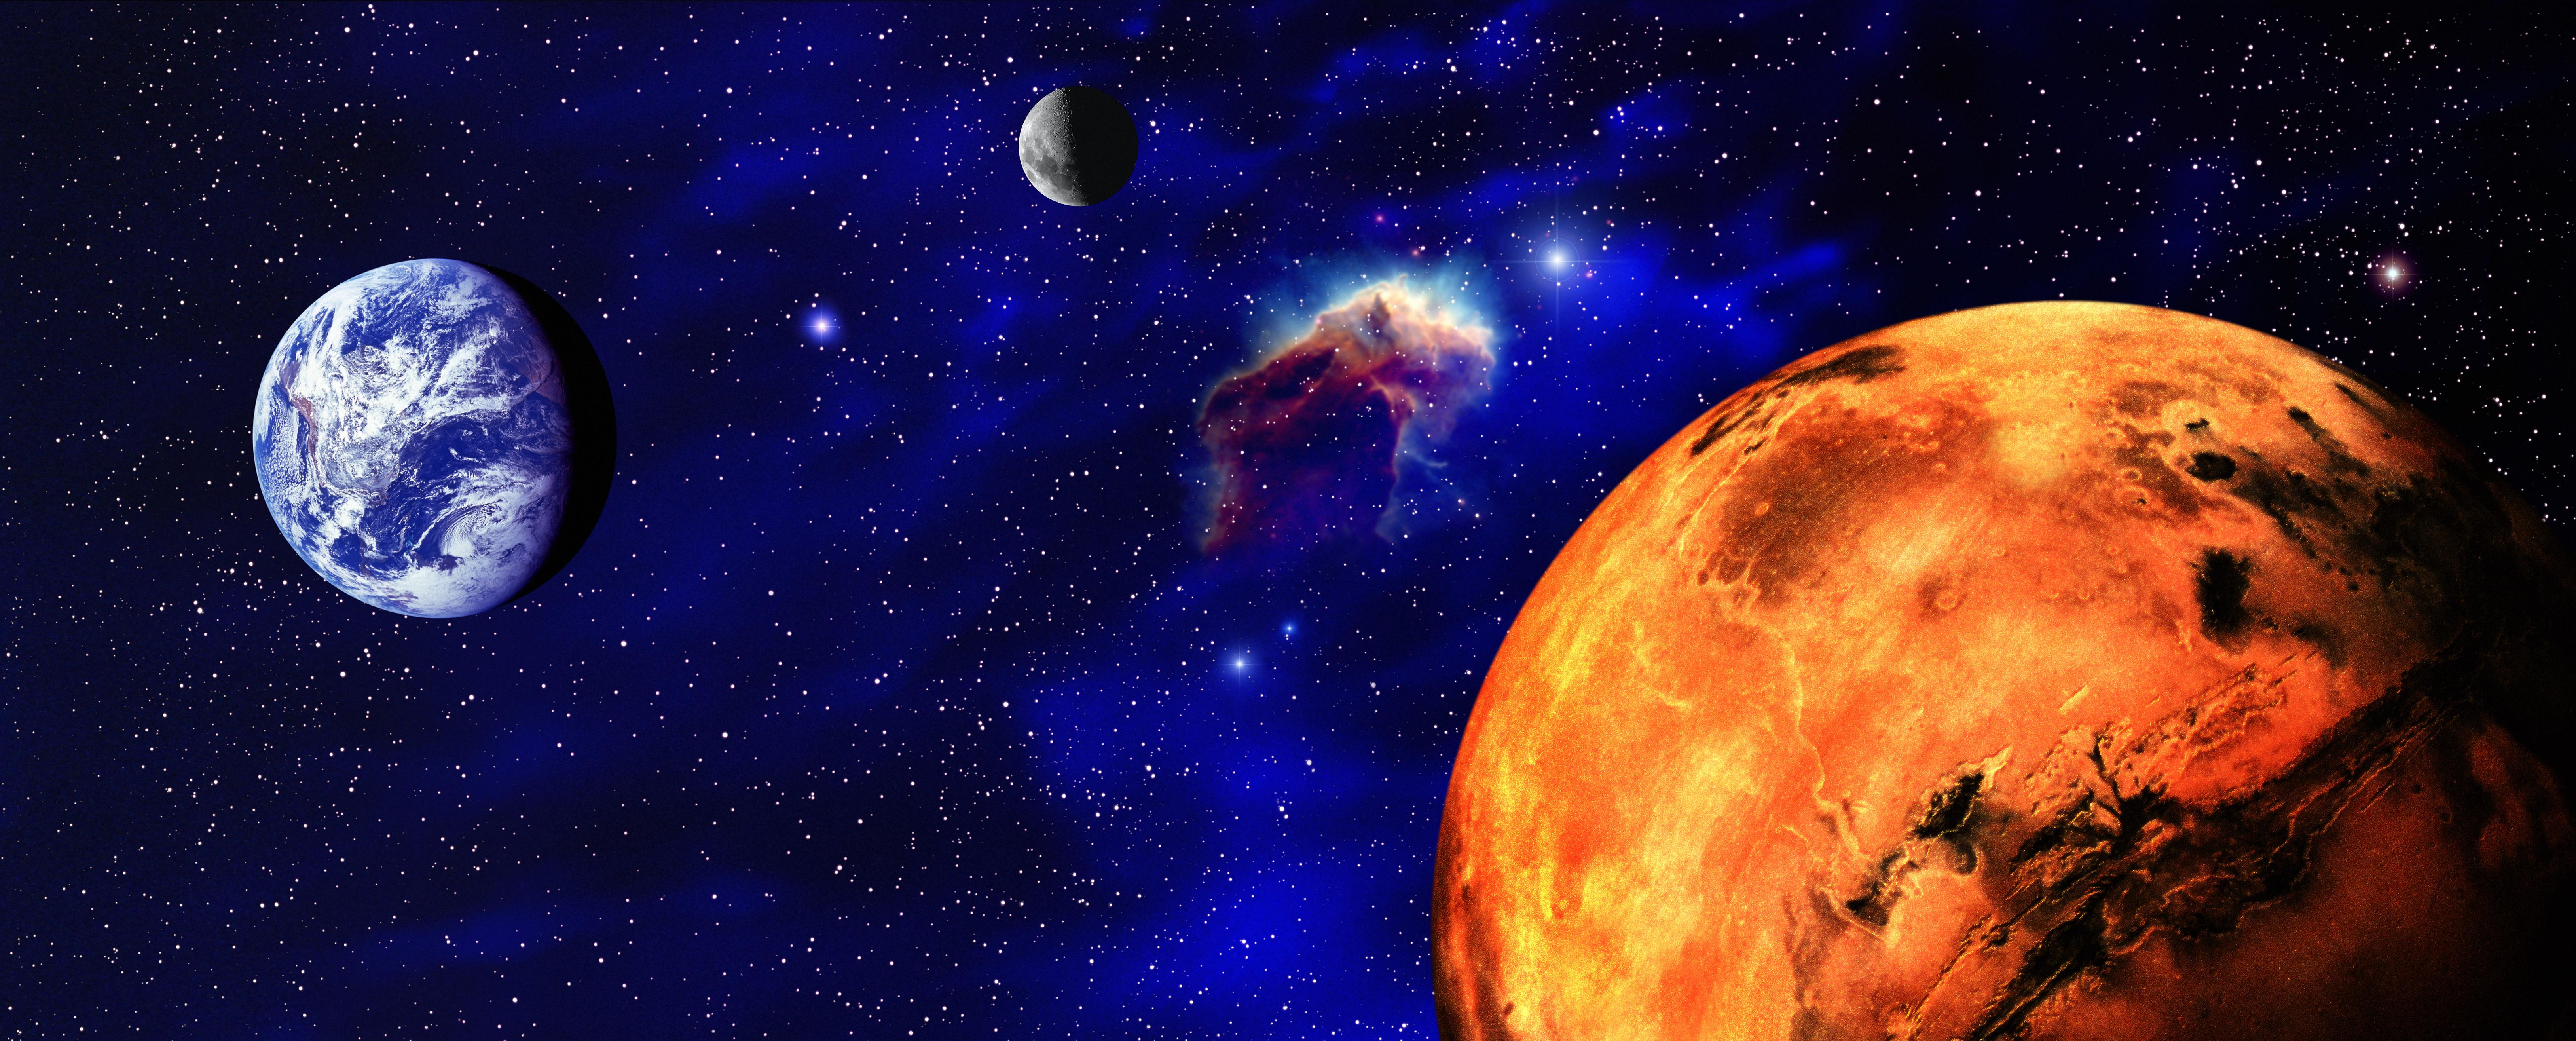 Illustration of Mars and Earth